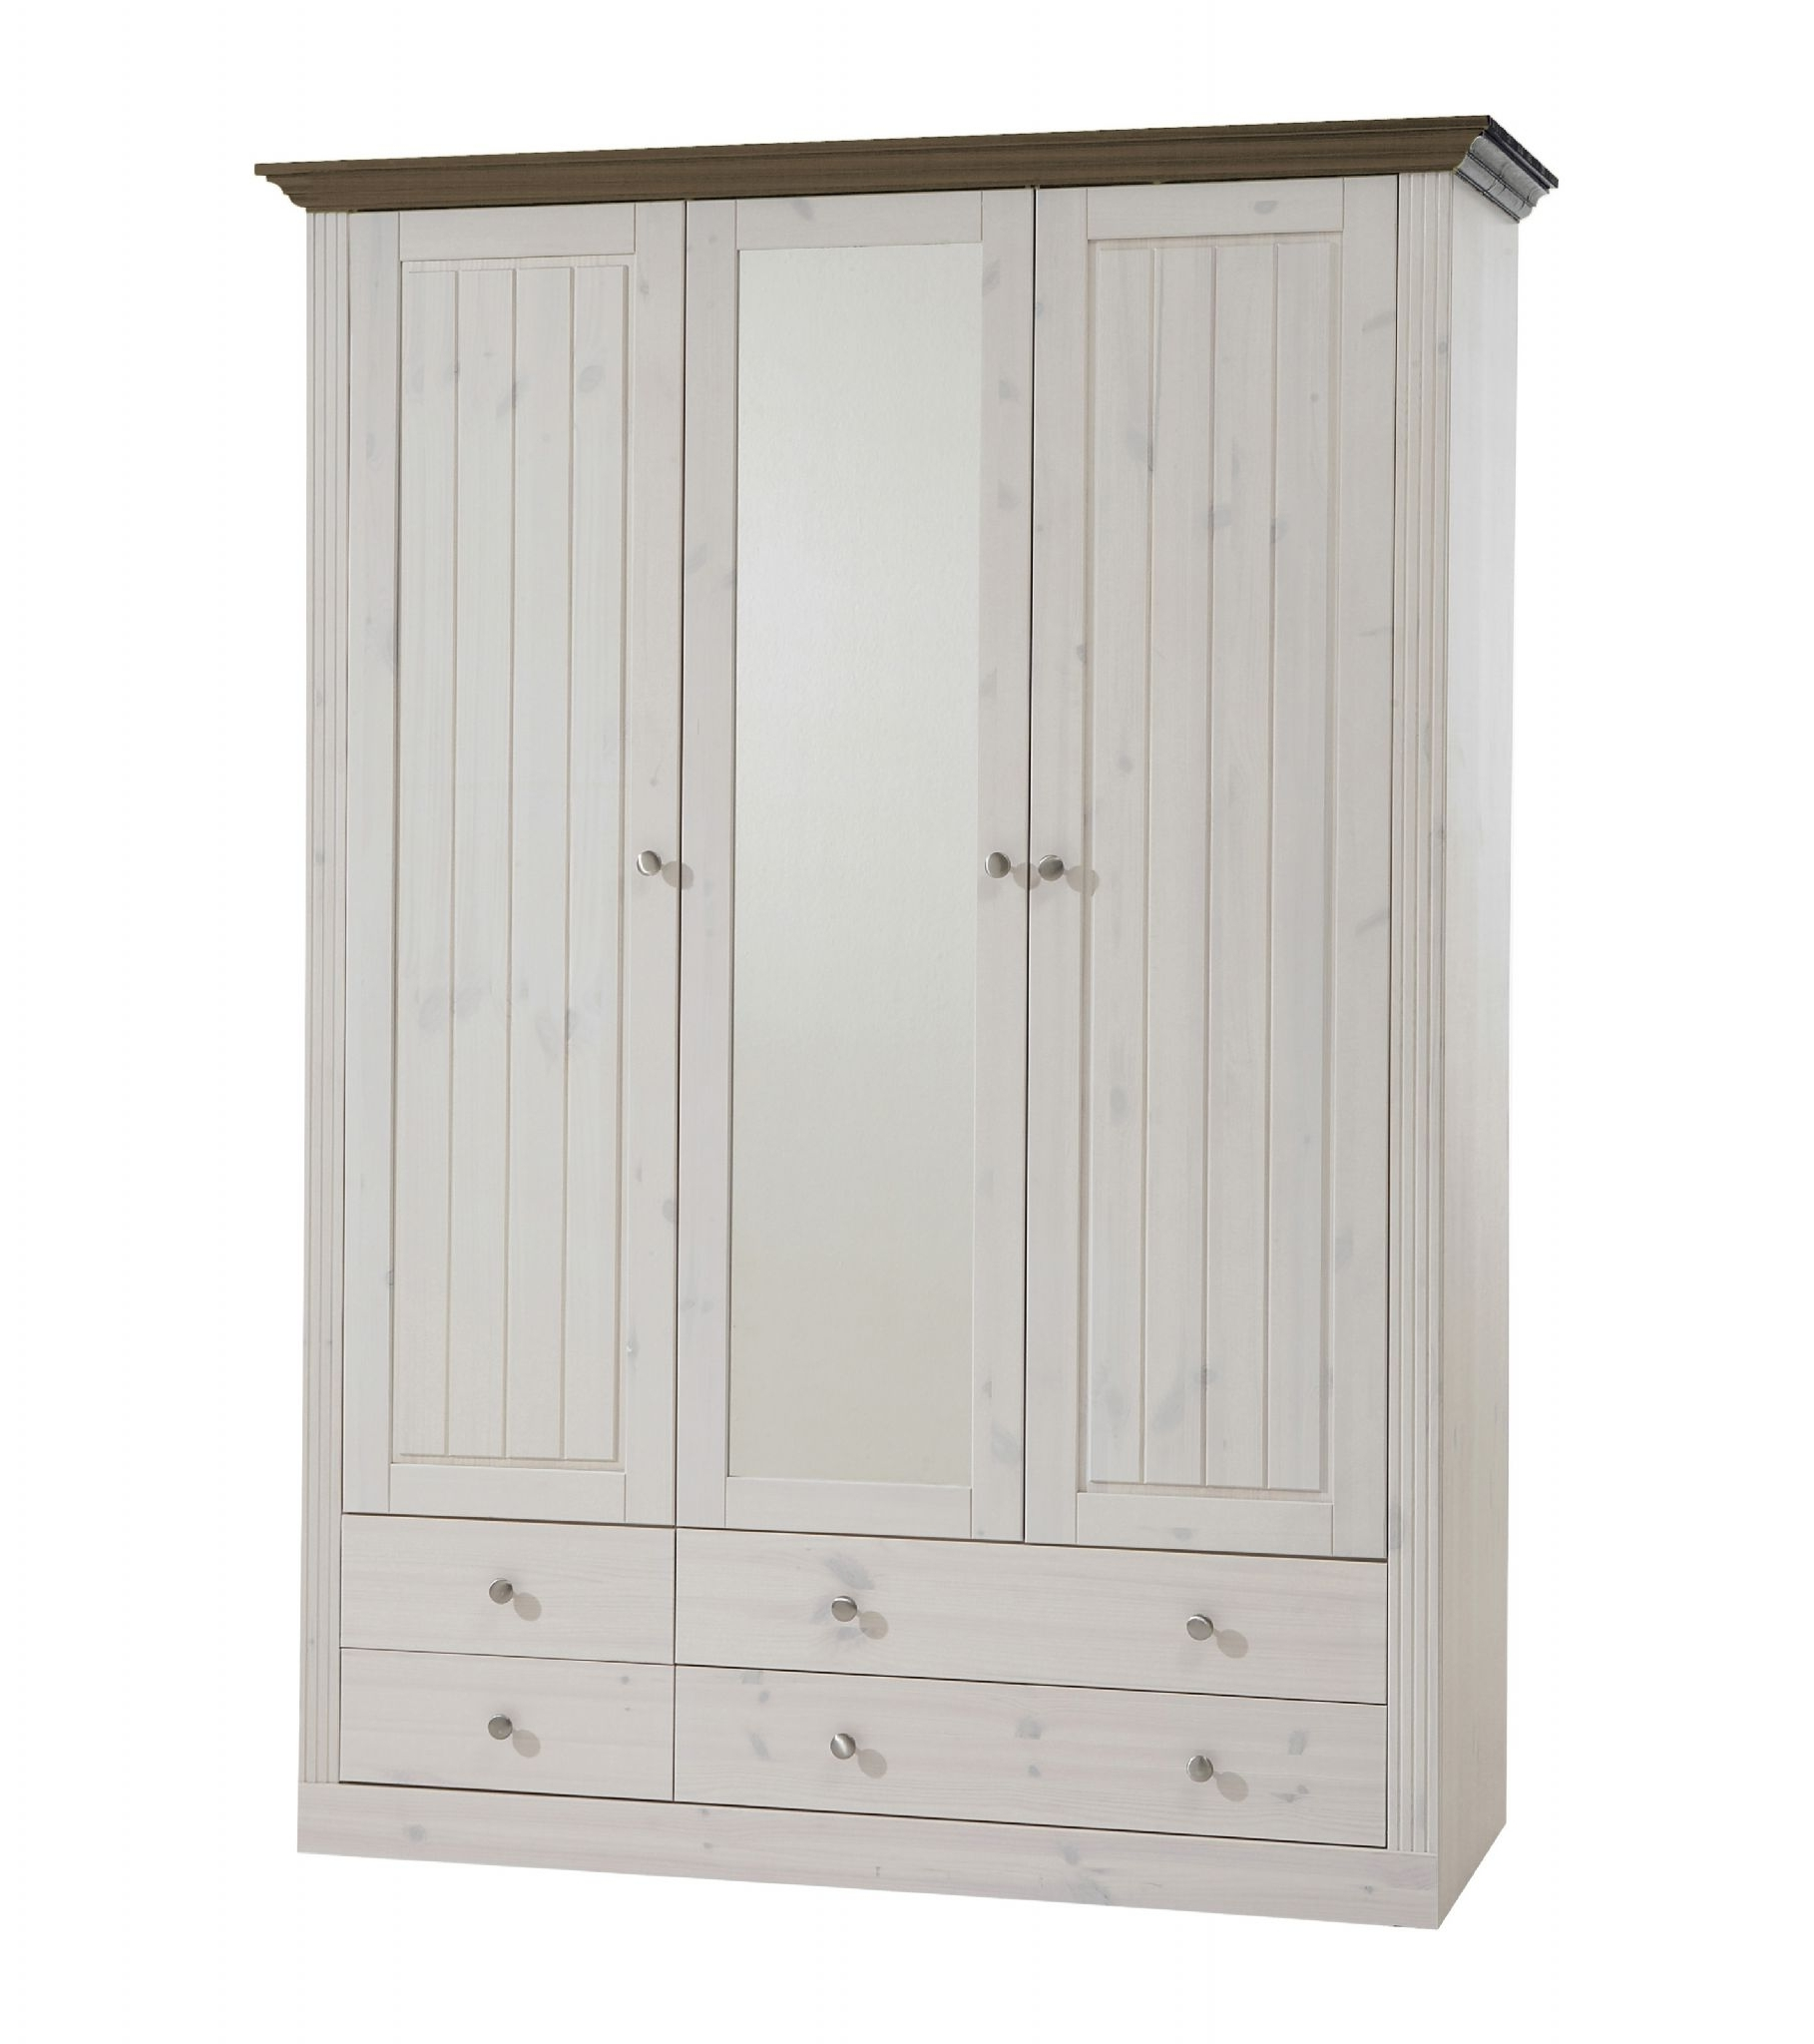 Favorite Whitewash Wardrobes Inside Monaco 2 1 Glazed Door 2 2 Drawer Pine Wardrobe Whitewash Dark (View 3 of 15)